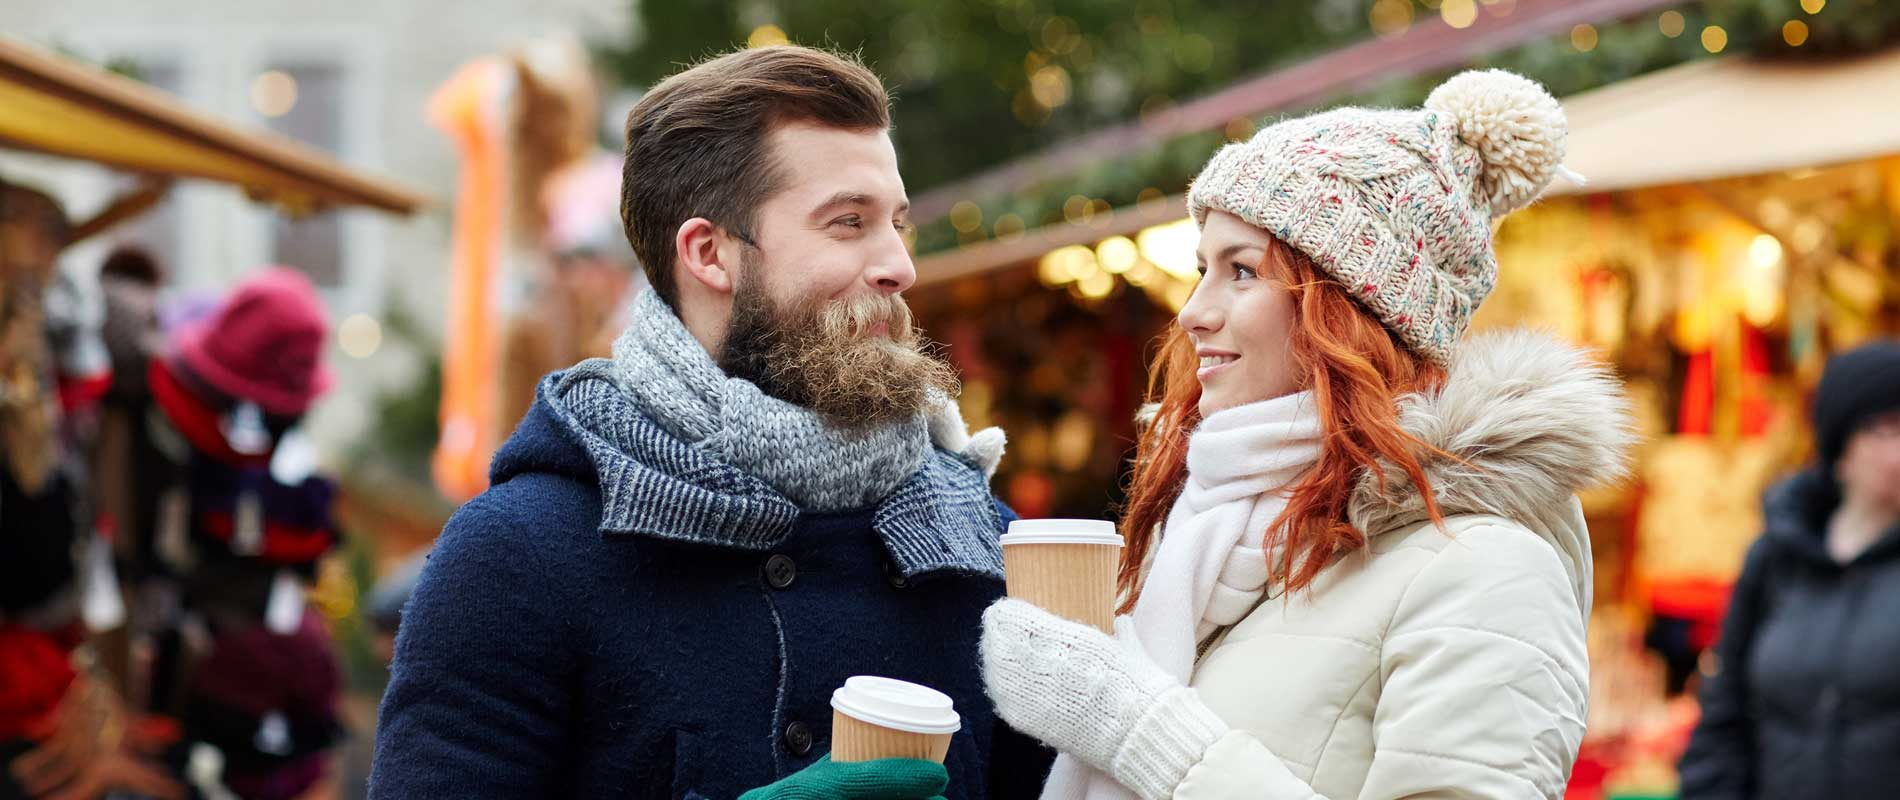 Young couple wearing coats and scarves enjoying coffees at a Christmas market